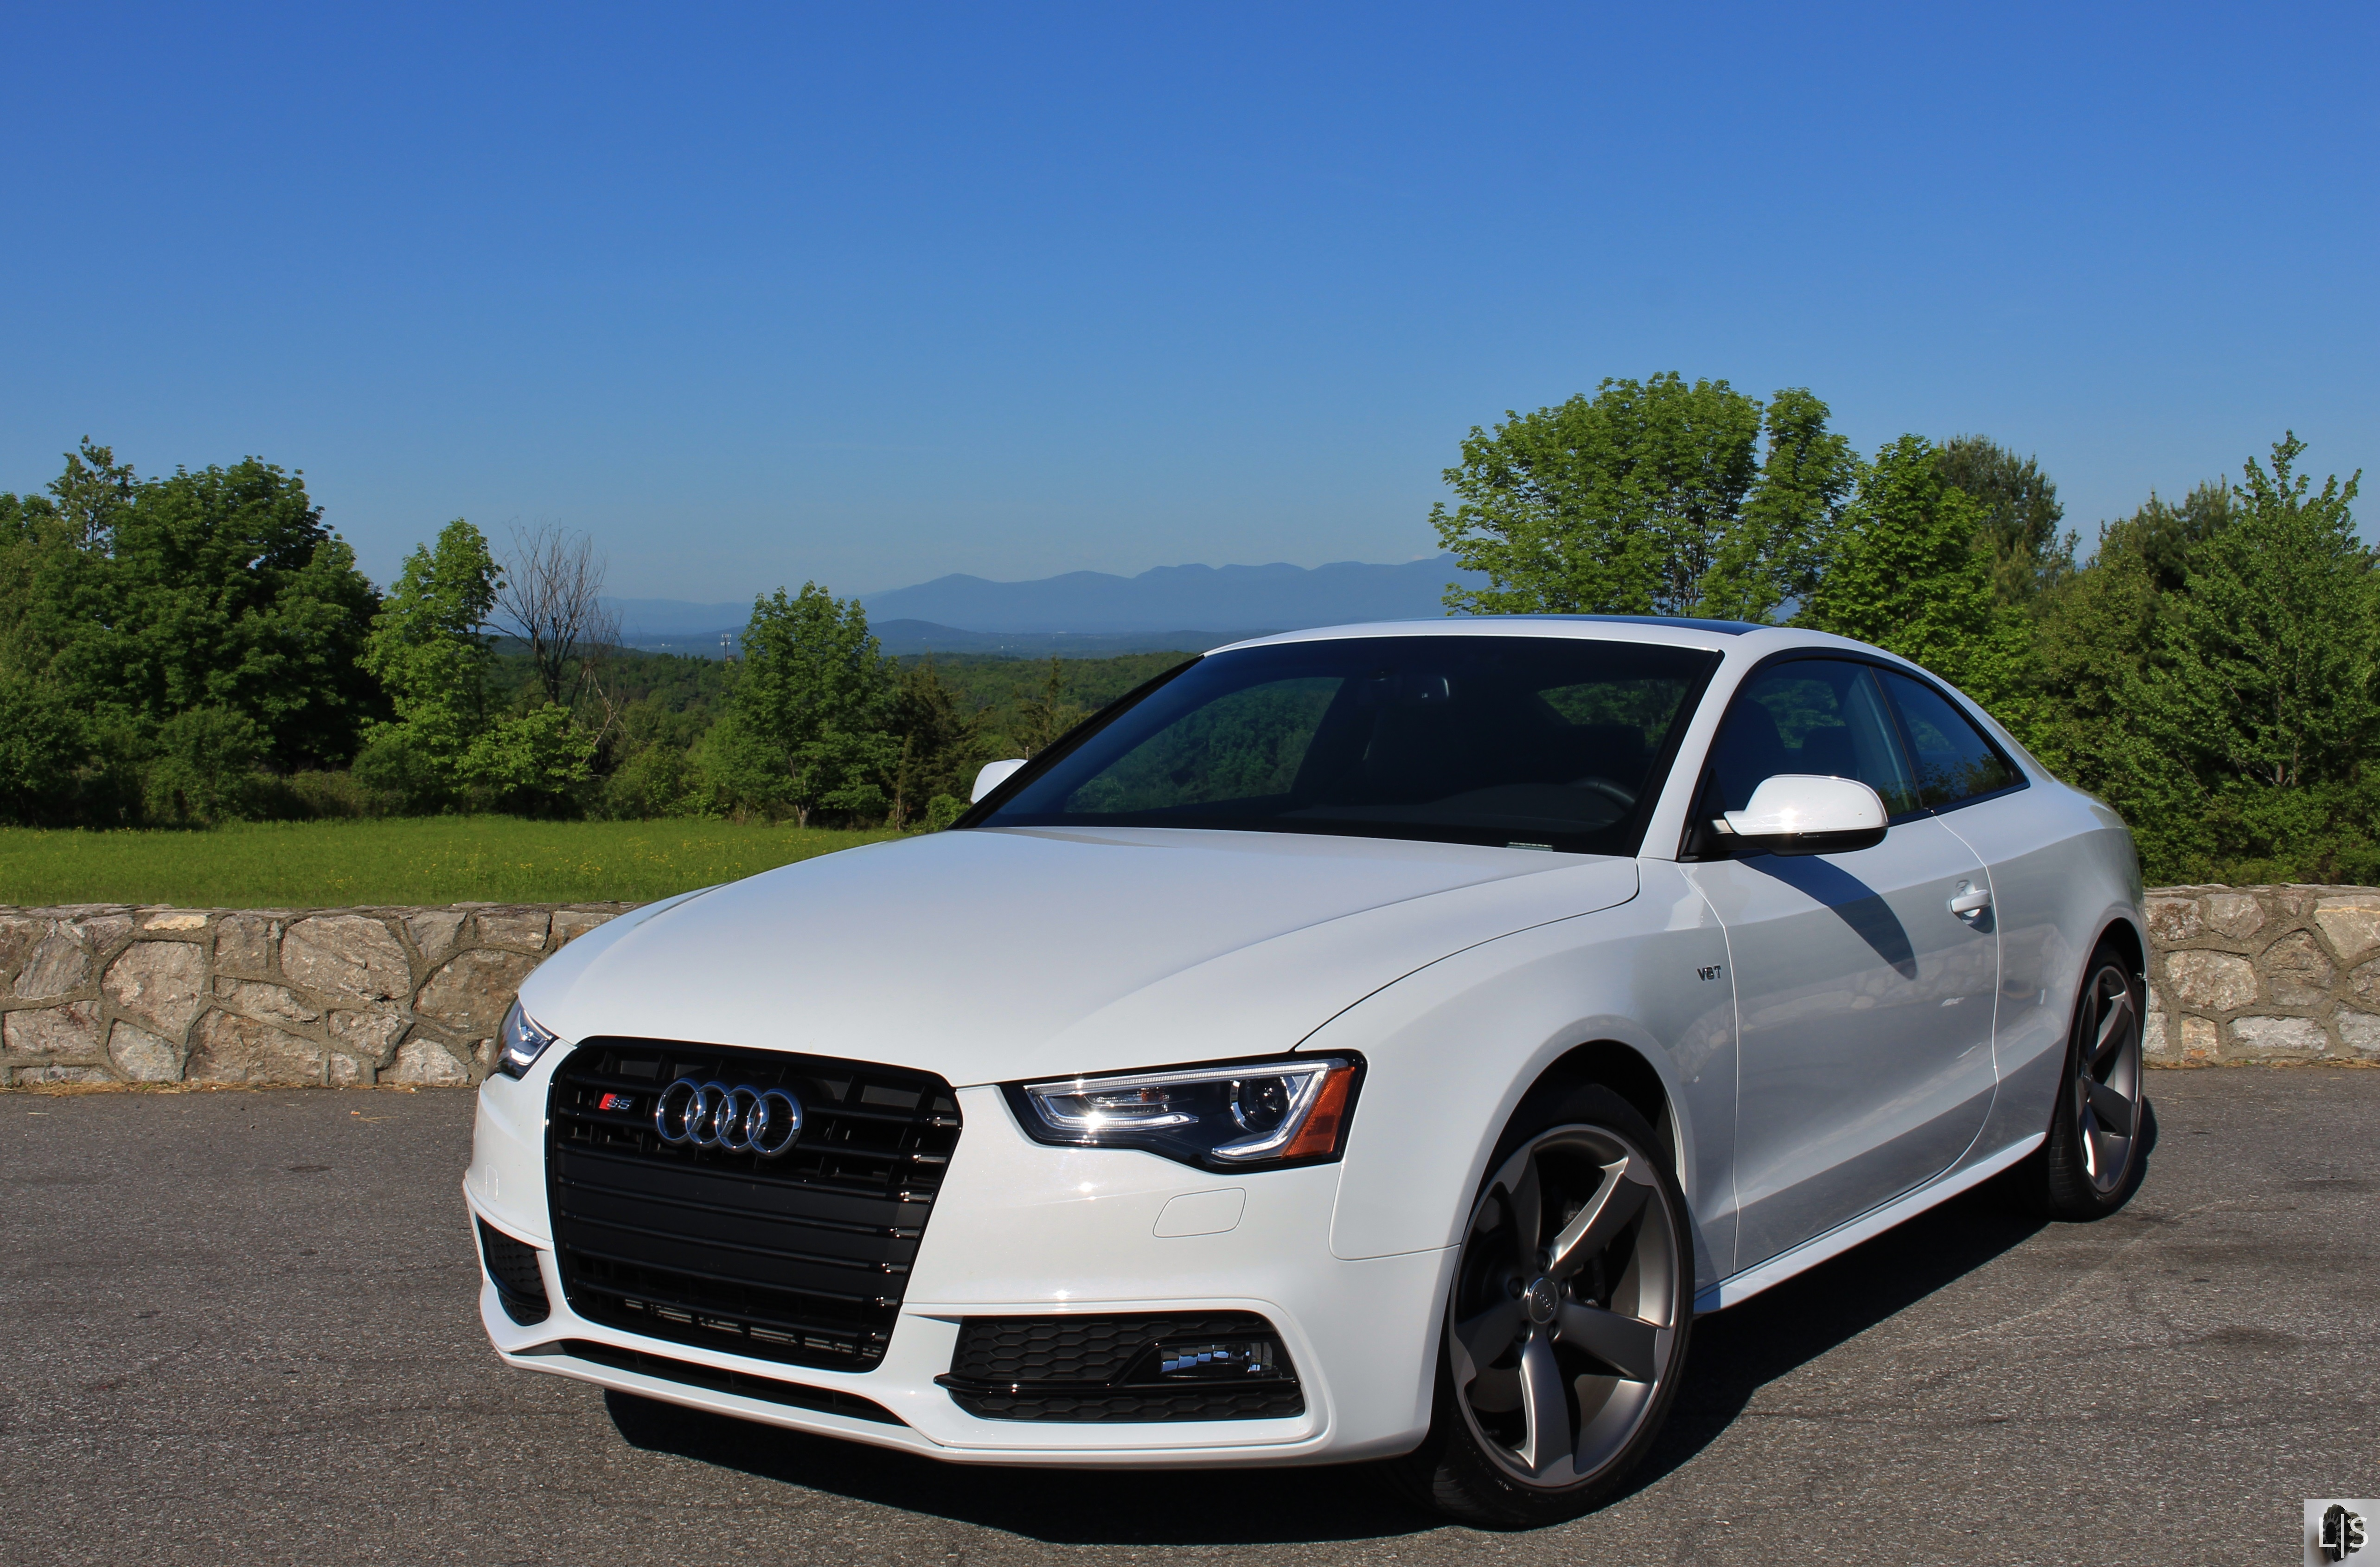 2014 Audi S5 – pictures, information and specs - Auto-Database.com